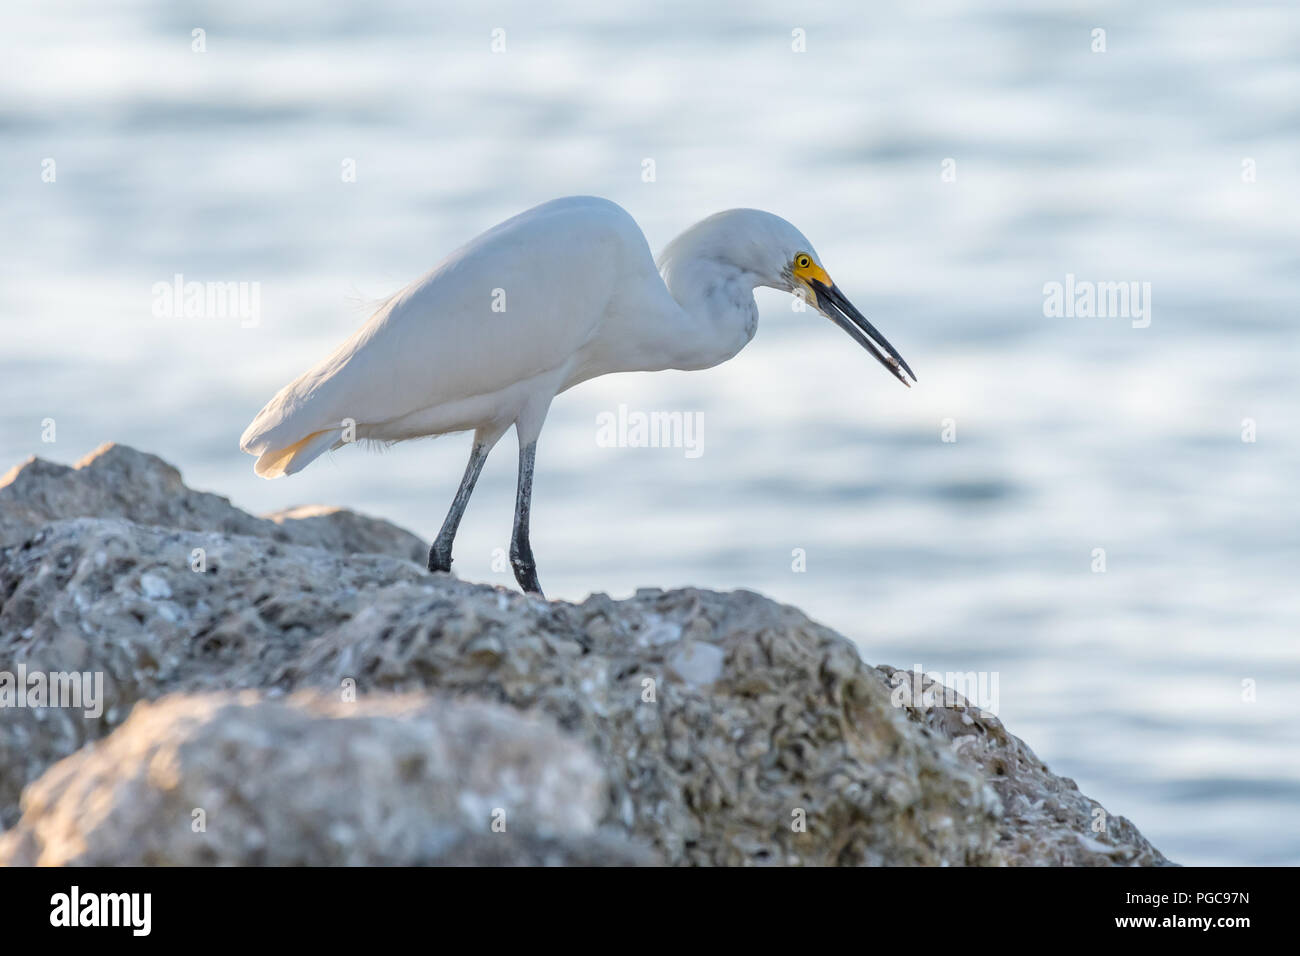 Snowy Egret (Egretta thula) finds some food on the rocky shore in Florida, USA. Stock Photo